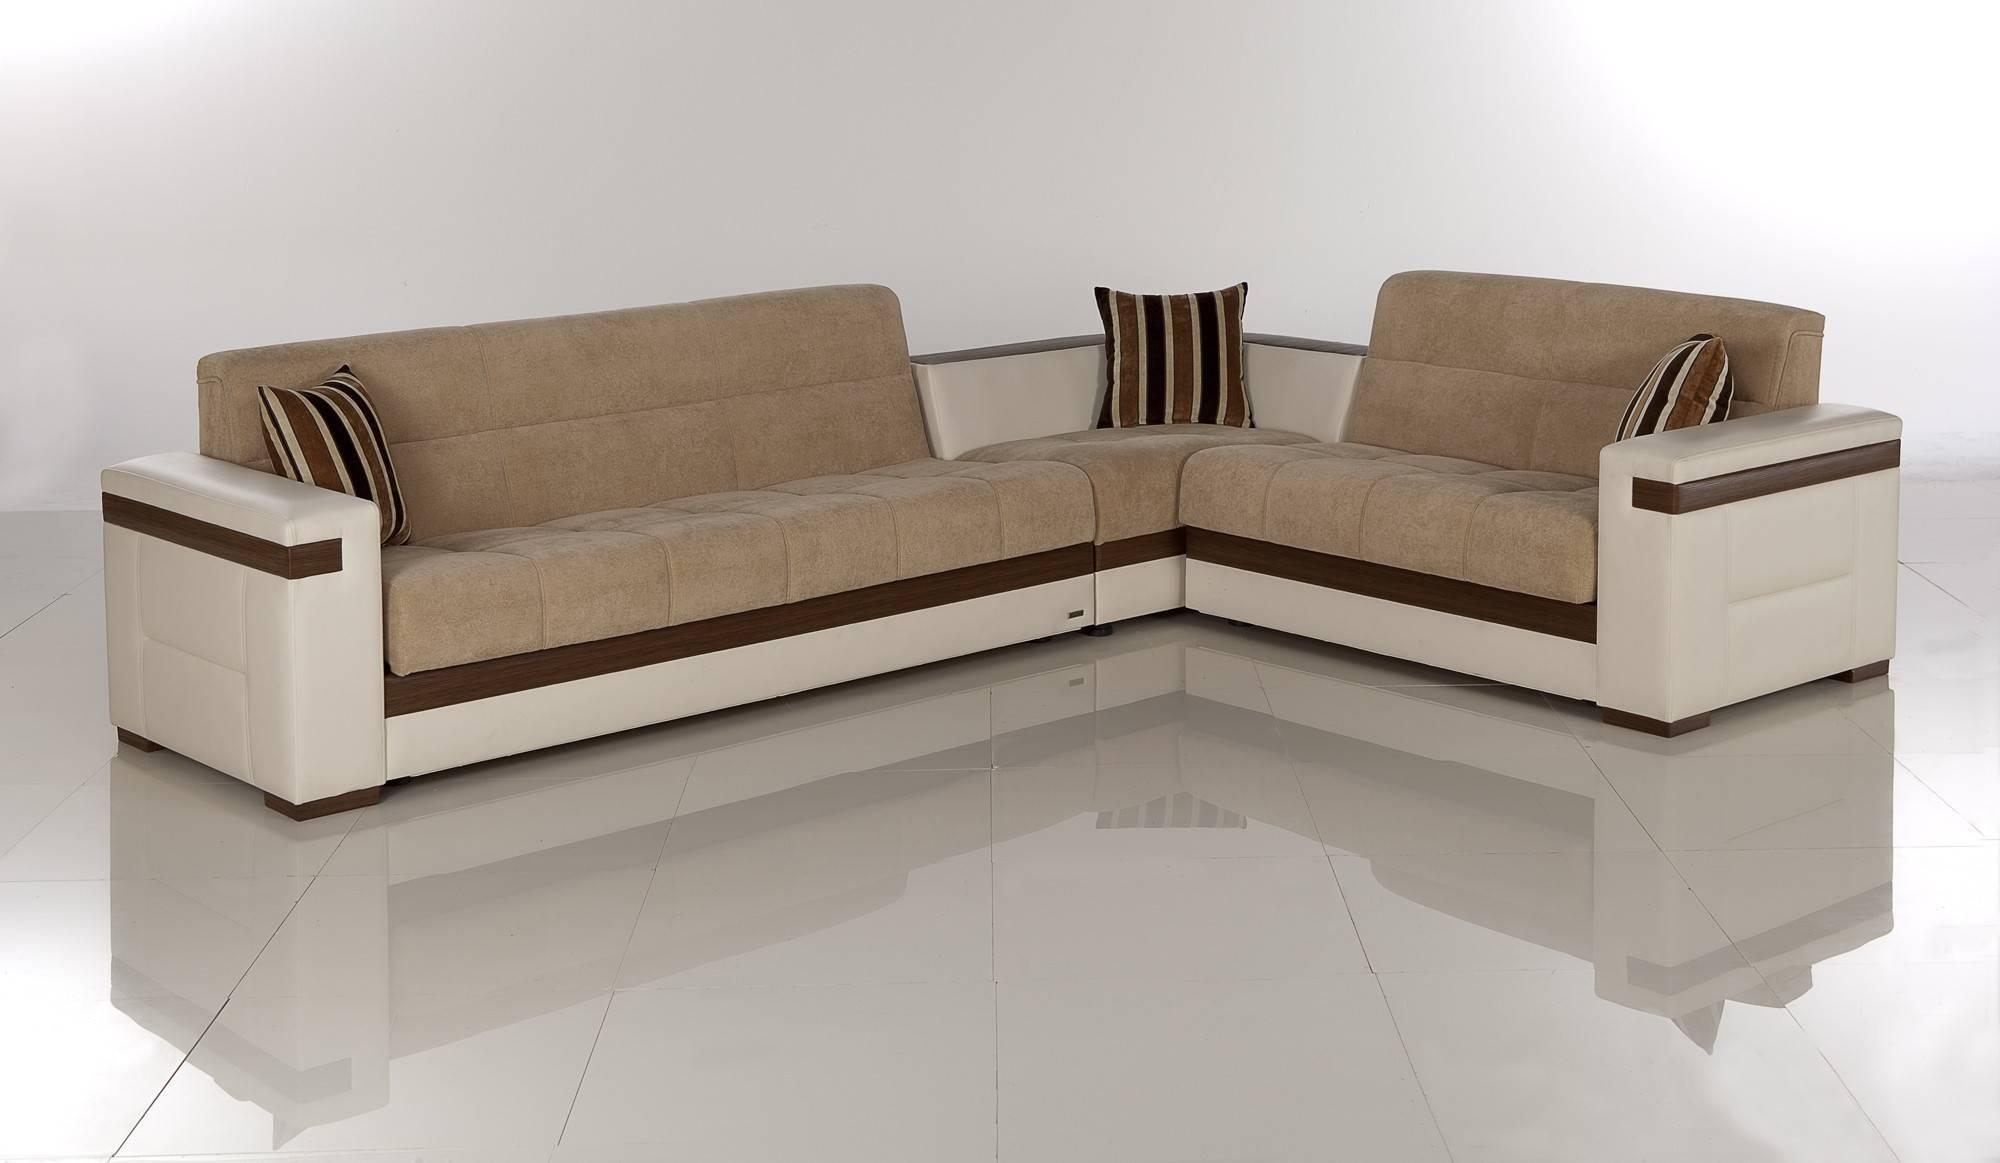 Remarkable Sectional Sofas With Sleepers 29 On Western Style with Western Style Sectional Sofas (Image 11 of 30)